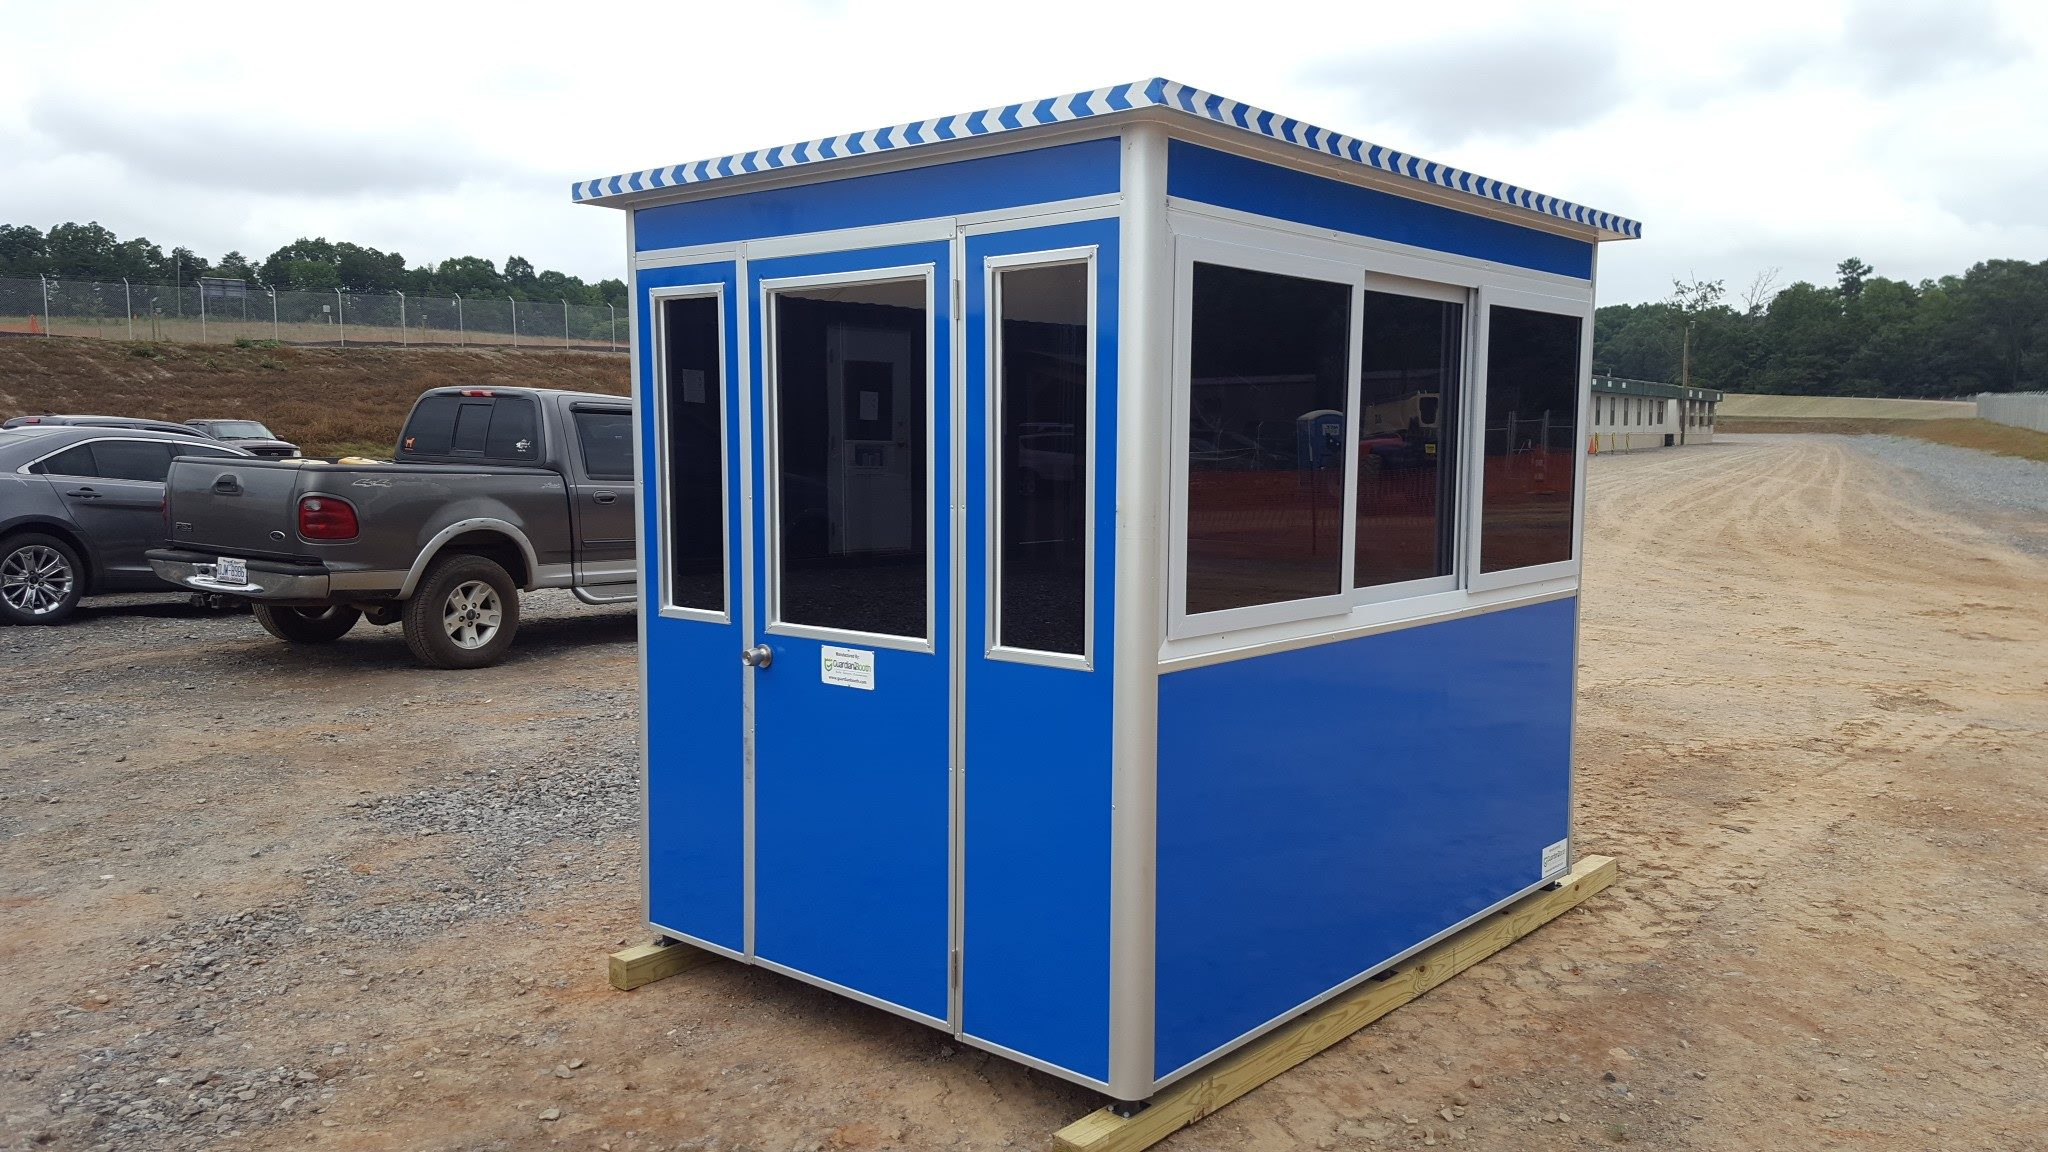 6x8 Construction Site Booth in Kings Mountain, NC with Tinted Windows, Built-in Ac, Baseboard Heaters, and Panel Box